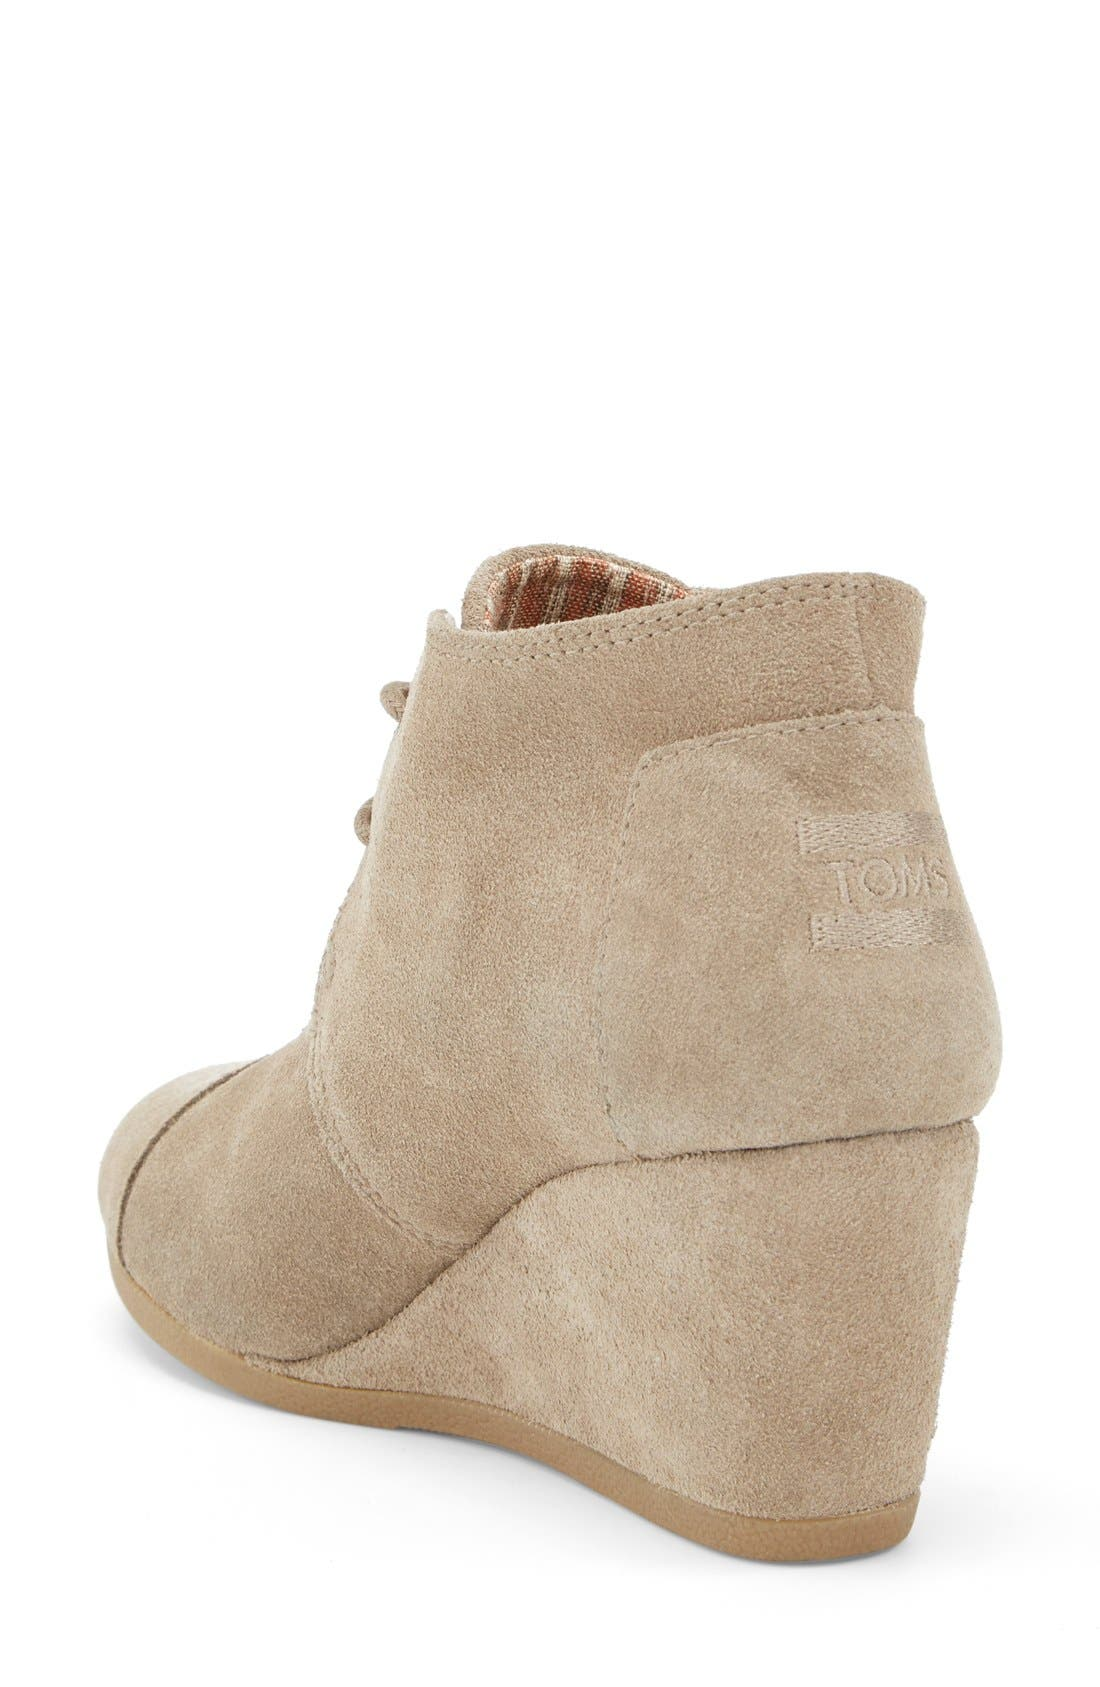 'Desert' Wedge Bootie,                             Alternate thumbnail 2, color,                             Taupe Suede